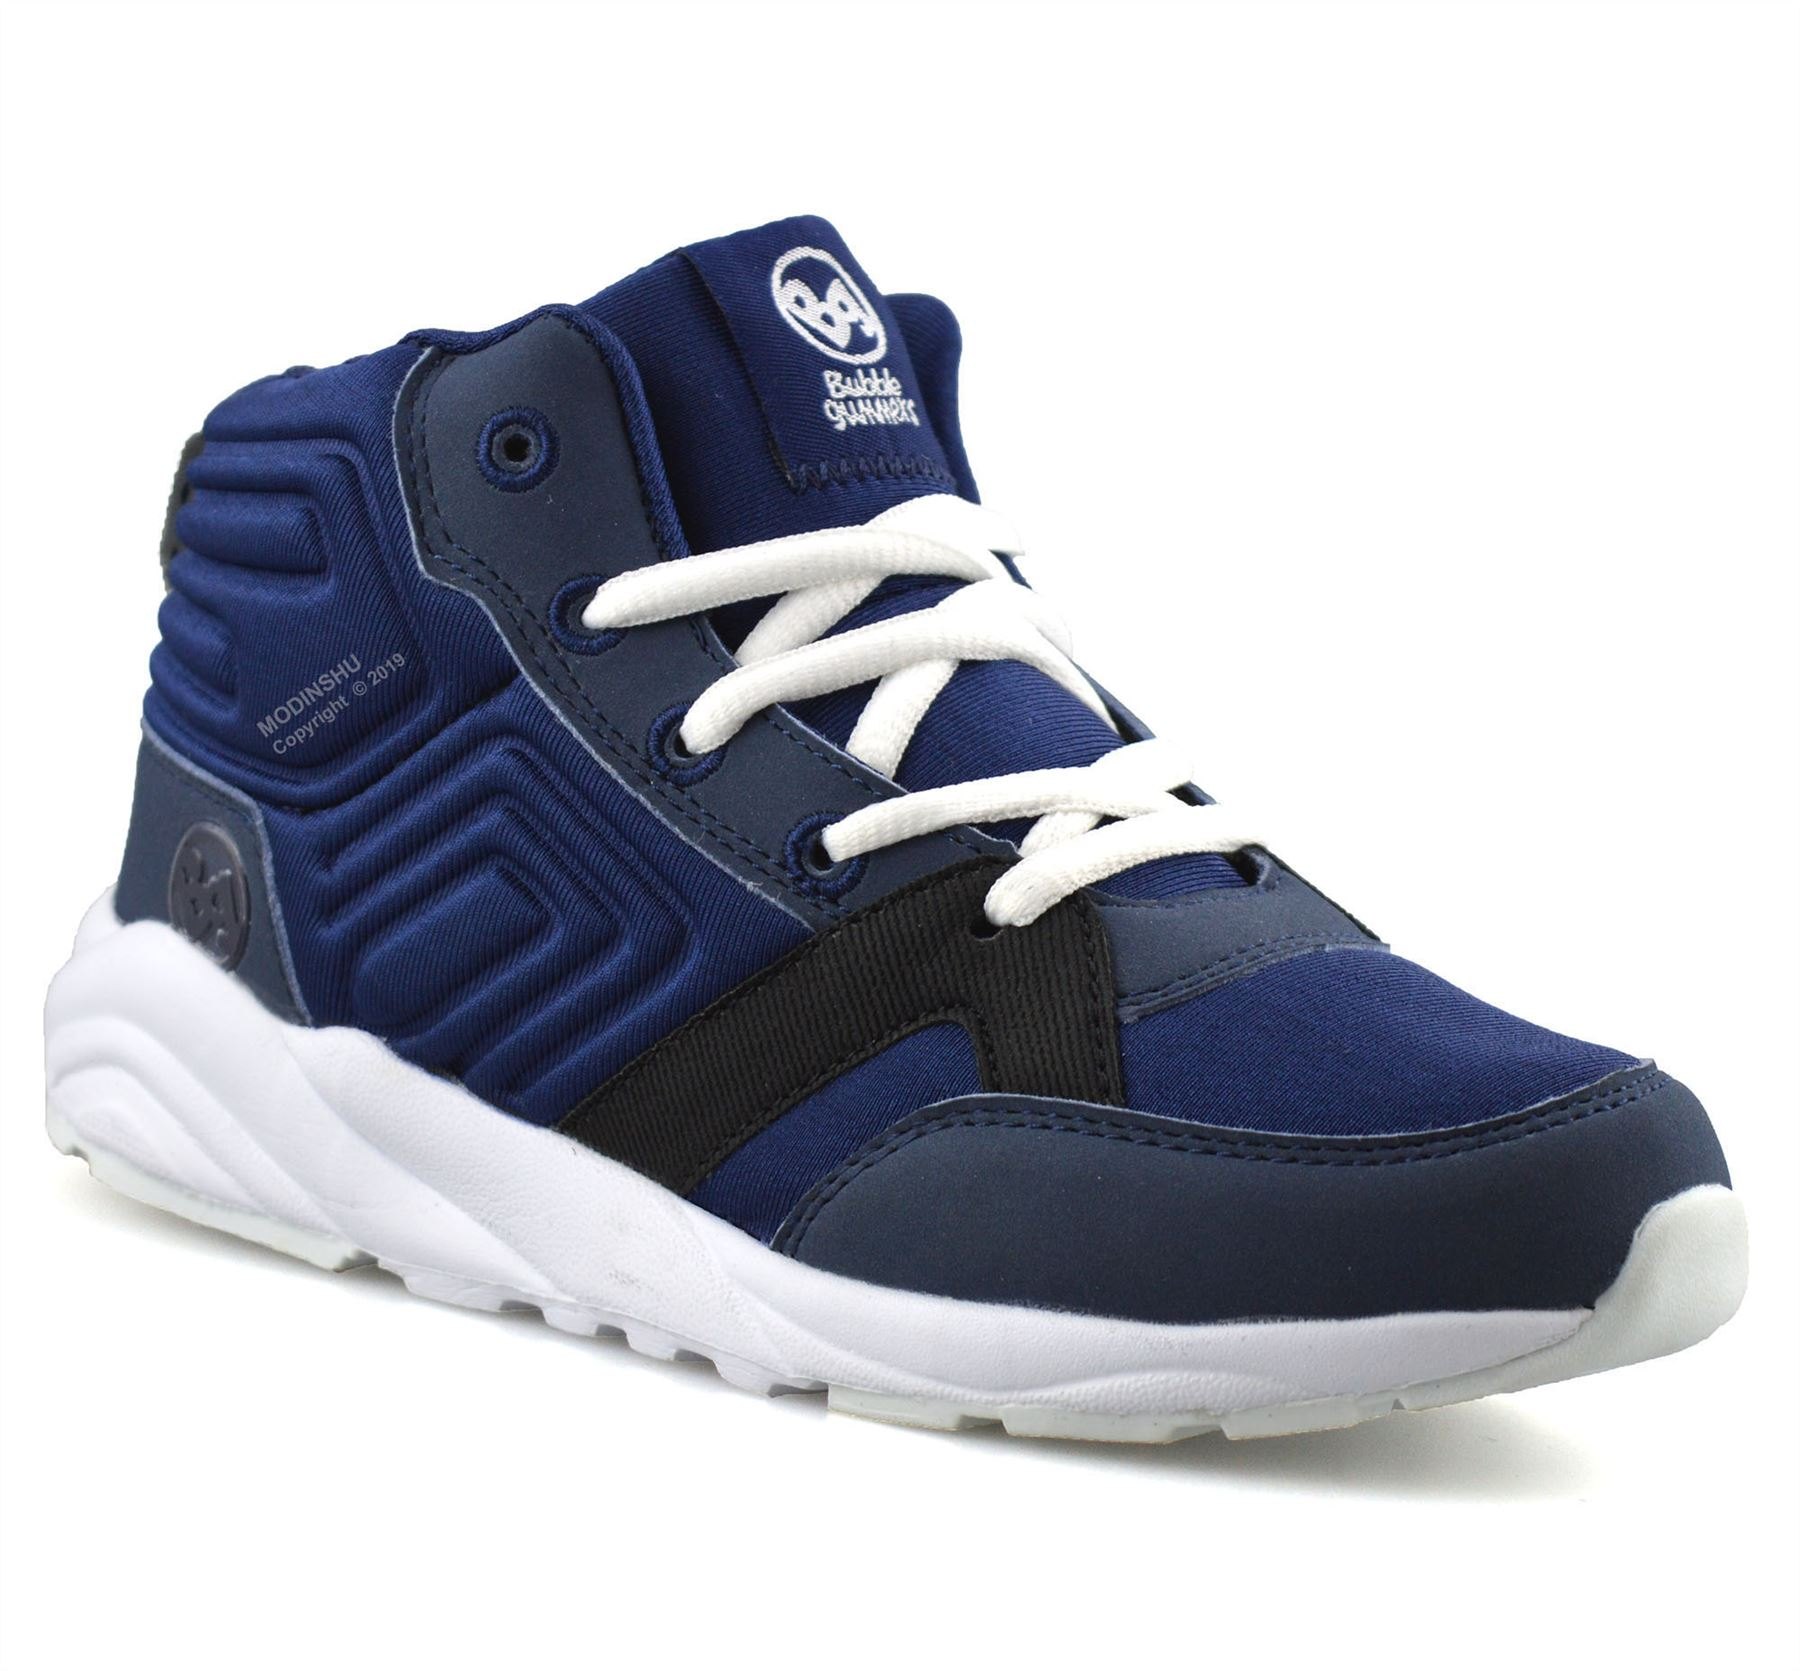 Boys Kids Childrens Casual Strap Hi Top Sports Trainers Ankle Boots Shoes Size